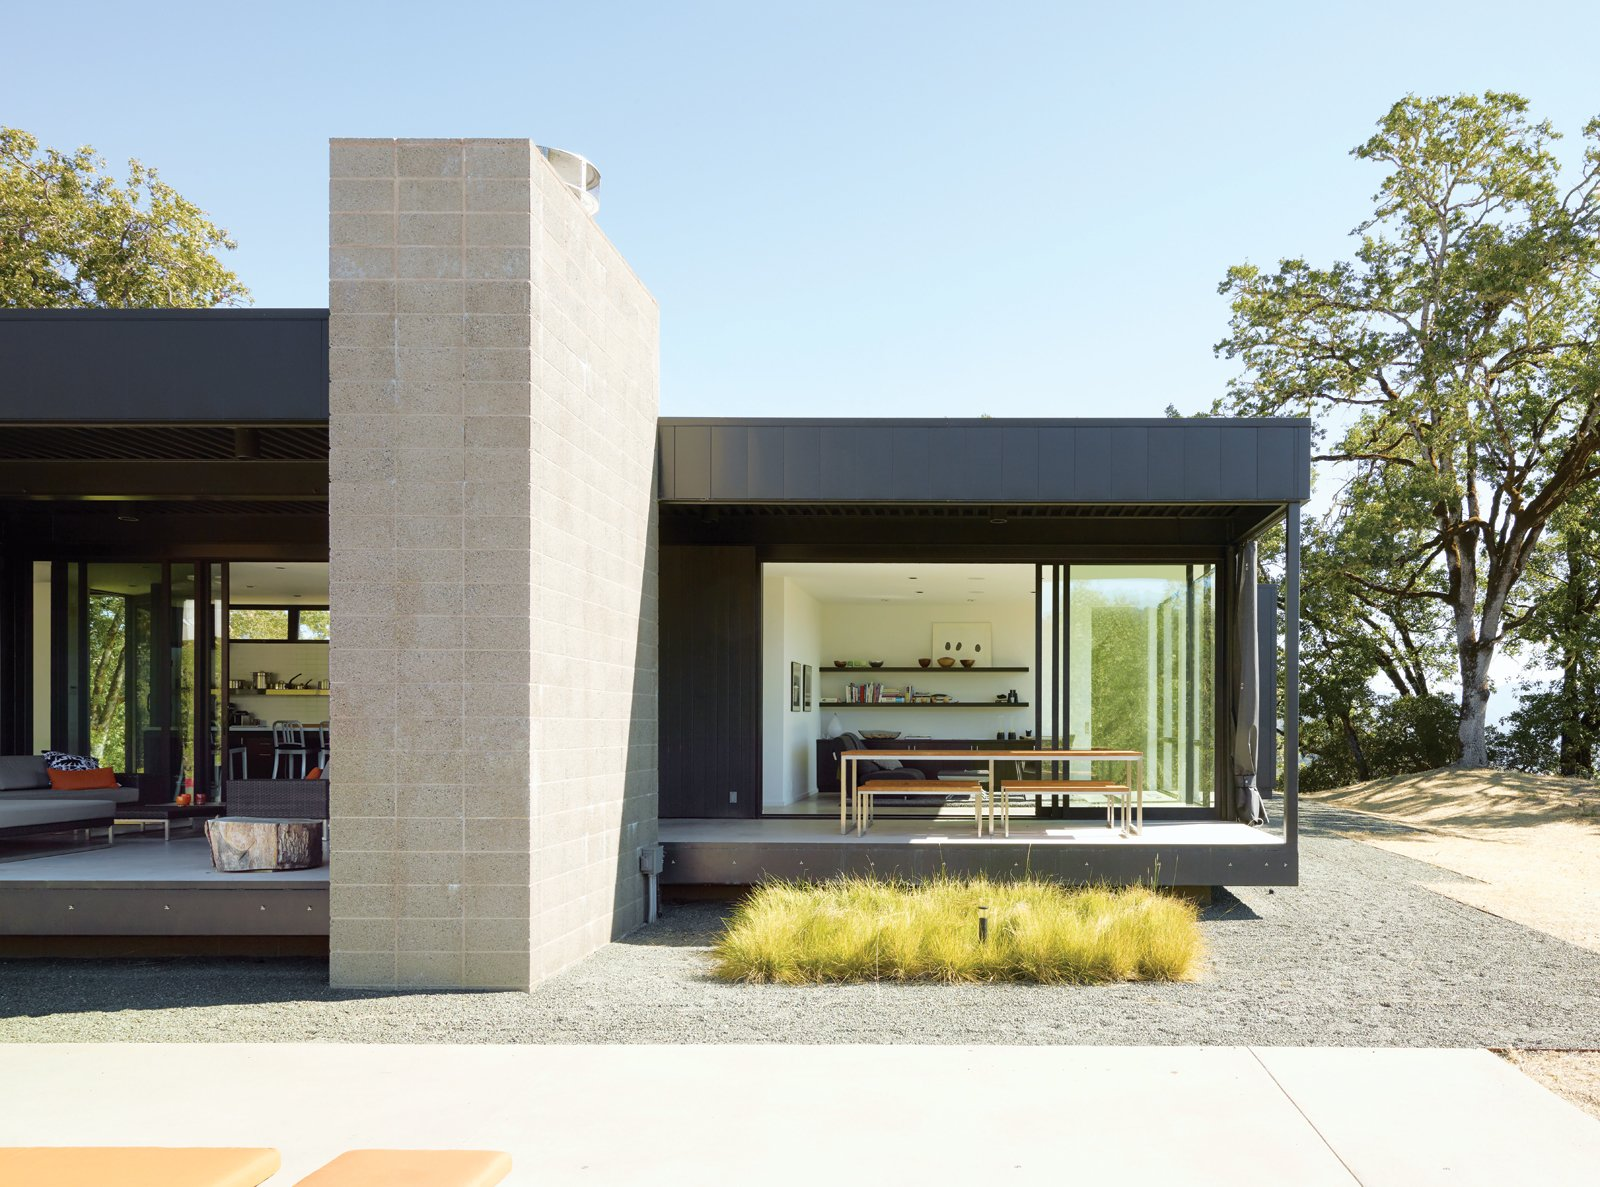 A Simple Plan  A Marmol Radziner–designed prefab house, trucked onto a remote Northern California site, takes the pain out of the construction process. Photo by Dwight Eschliman. Tagged: Outdoor, Shrubs, Back Yard, Small Patio, Porch, Deck, and Concrete Patio, Porch, Deck. Prefab by Arno Sandoval